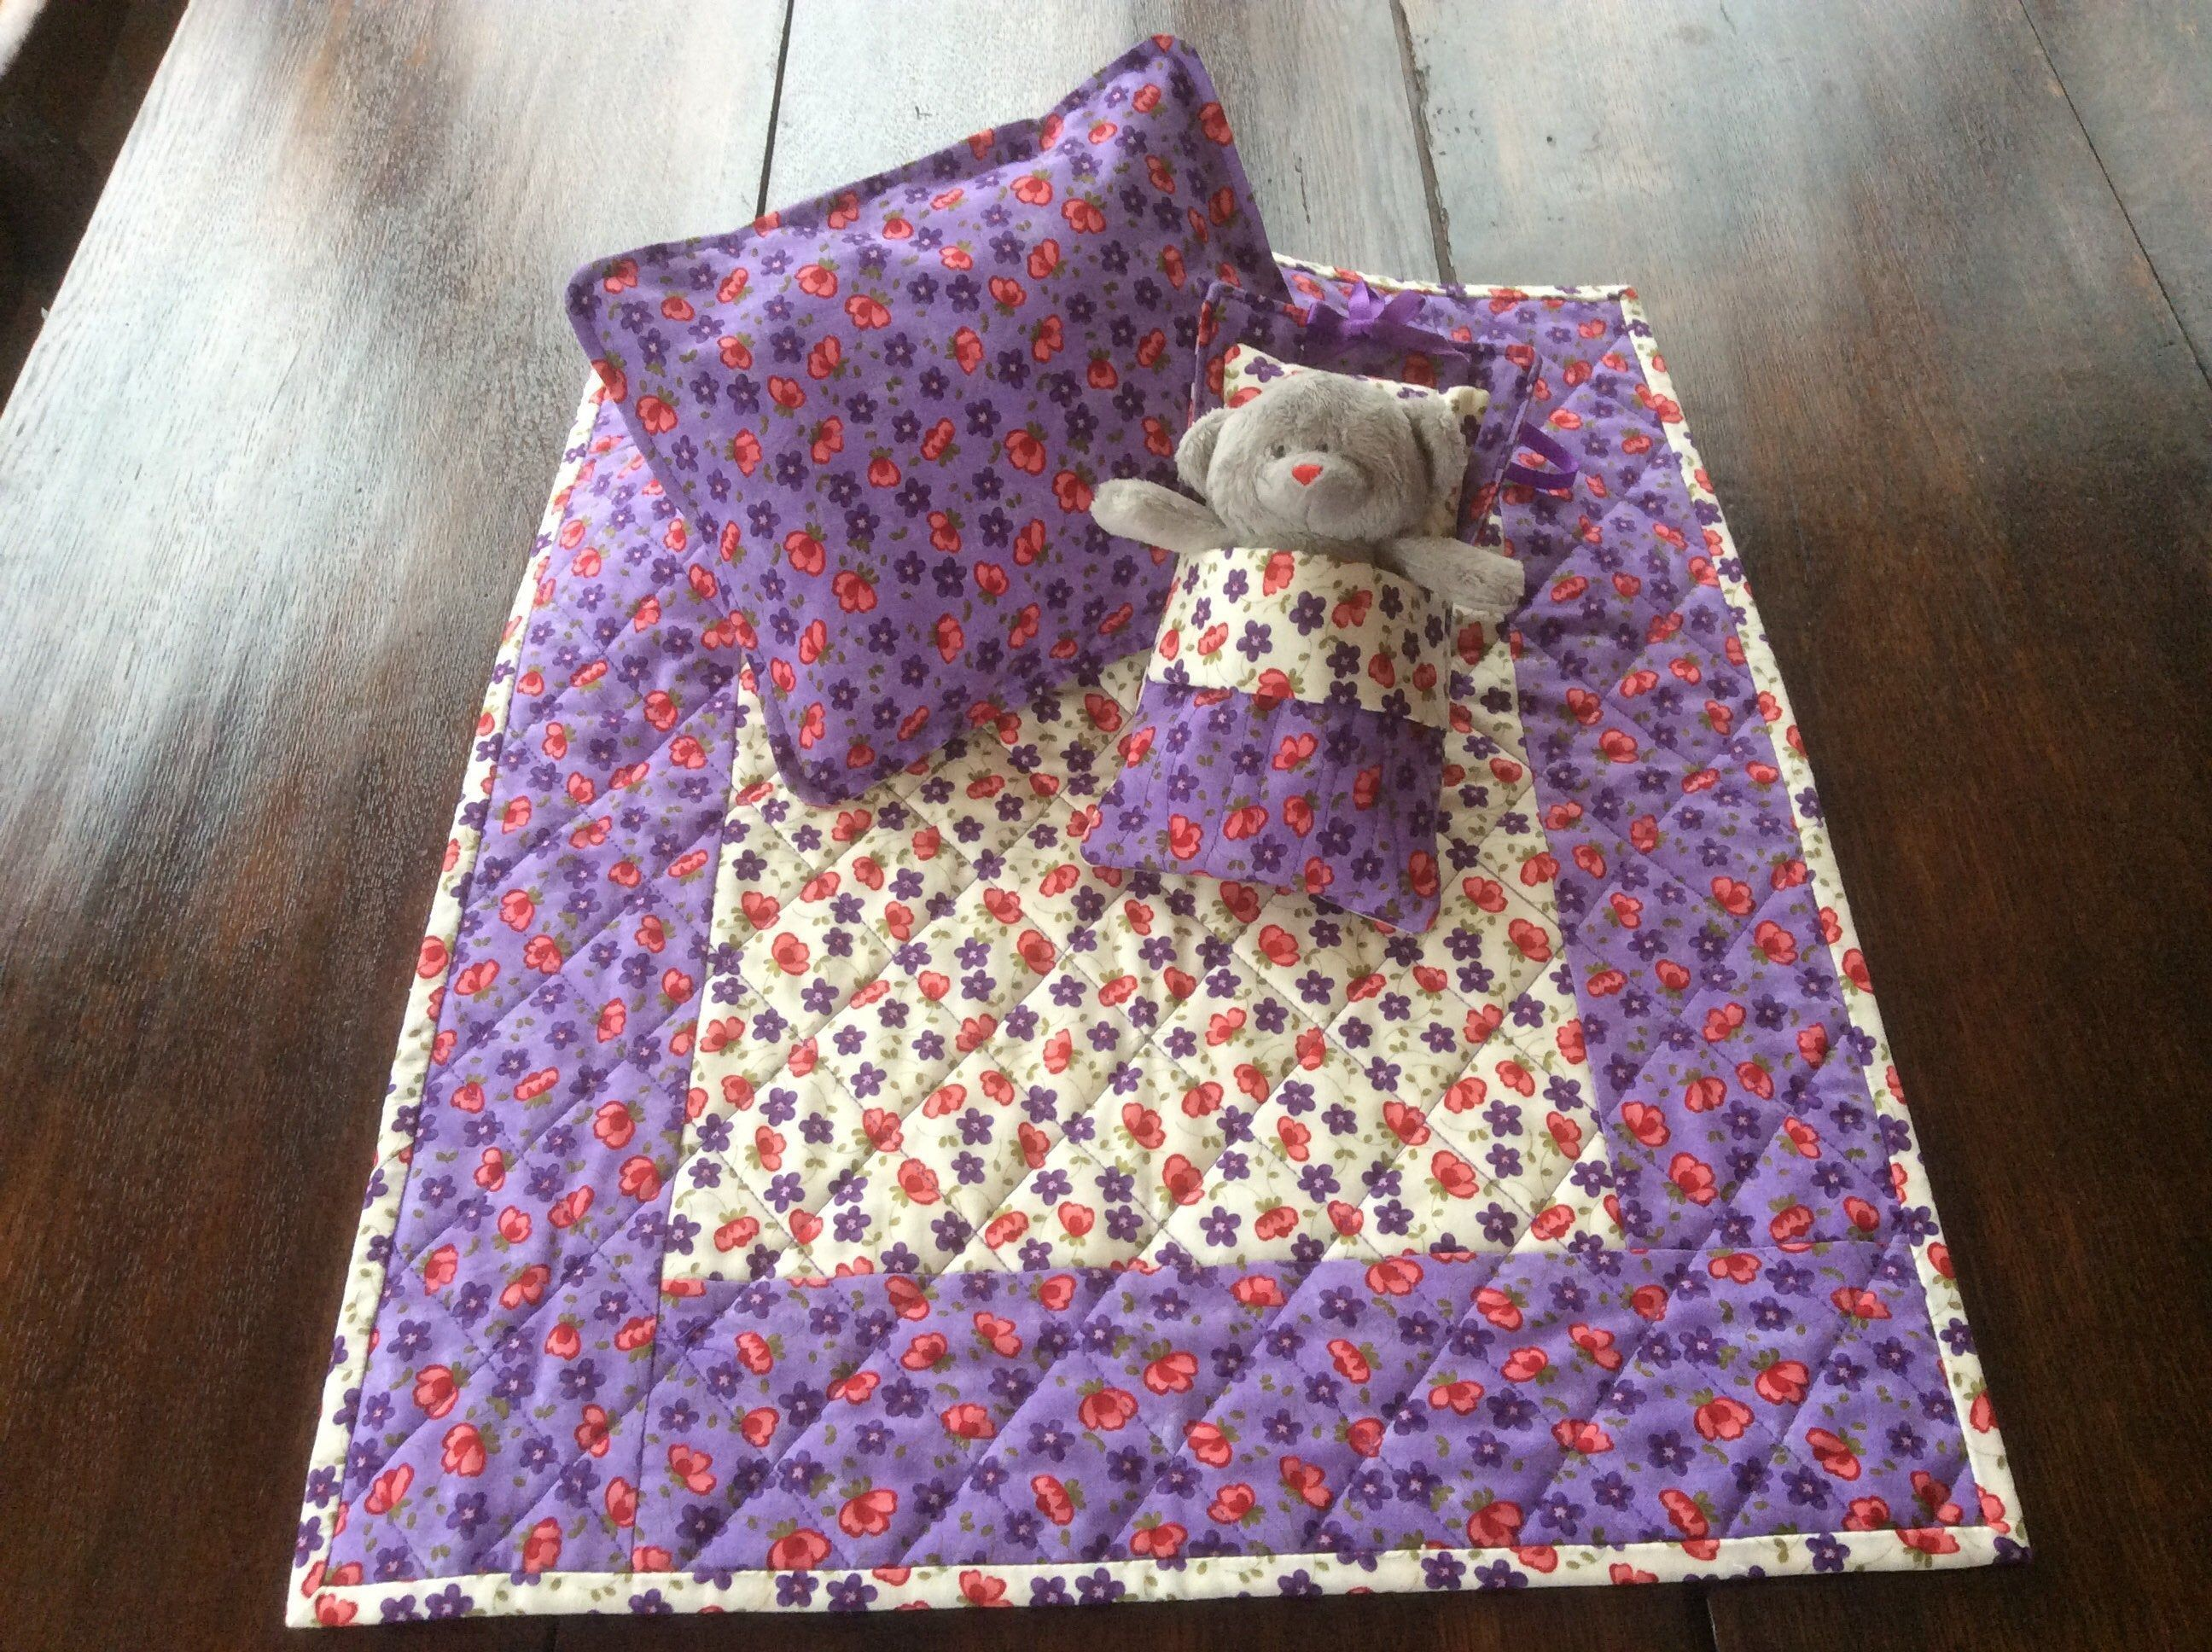 Purple Doll Quilt and Pillow.Hadmade. Bear In Sleeping Bag.Easter Gift.Bear Quilt.Unique.Patchwork Quilt.Small Quilt.Dolls Bedding #bearbedpillowdolls Purple Doll Quilt and Pillow.Hadmade. Bear In Sleeping Bag.Bear Quilt.Unique.Patchwork Quilt.Small Quilt.Dolls Bedding. by PetrinaRigbyQuilting on Etsy #bearbedpillowdolls Purple Doll Quilt and Pillow.Hadmade. Bear In Sleeping Bag.Easter Gift.Bear Quilt.Unique.Patchwork Quilt.Small Quilt.Dolls Bedding #bearbedpillowdolls Purple Doll Quilt and Pill #bearbedpillowdolls